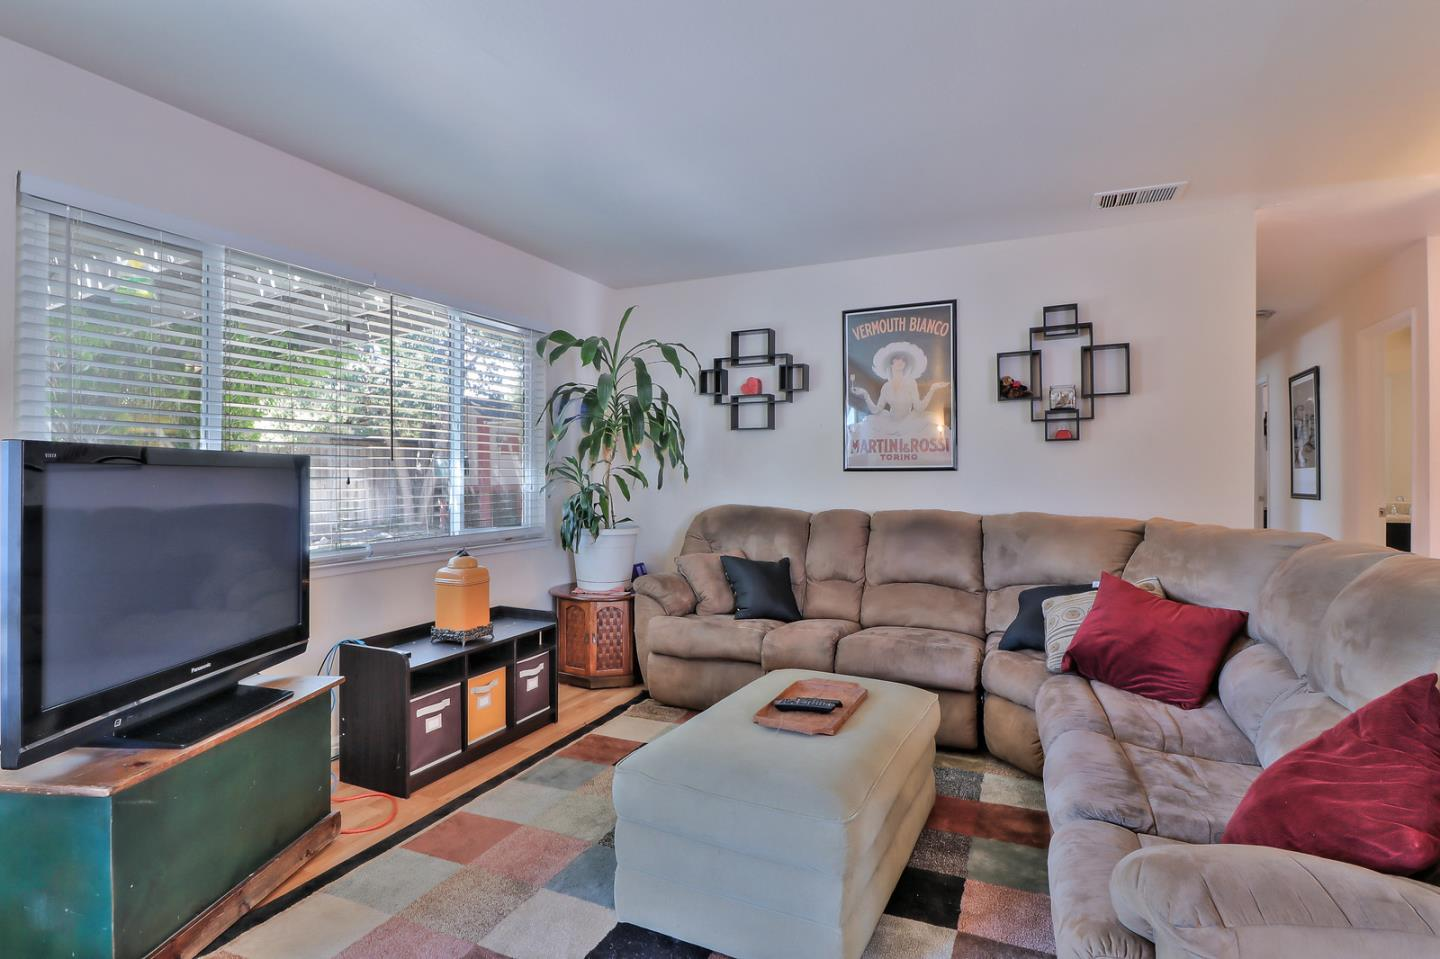 Additional photo for property listing at 1580 Jacob Avenue  San Jose, カリフォルニア 95118 アメリカ合衆国